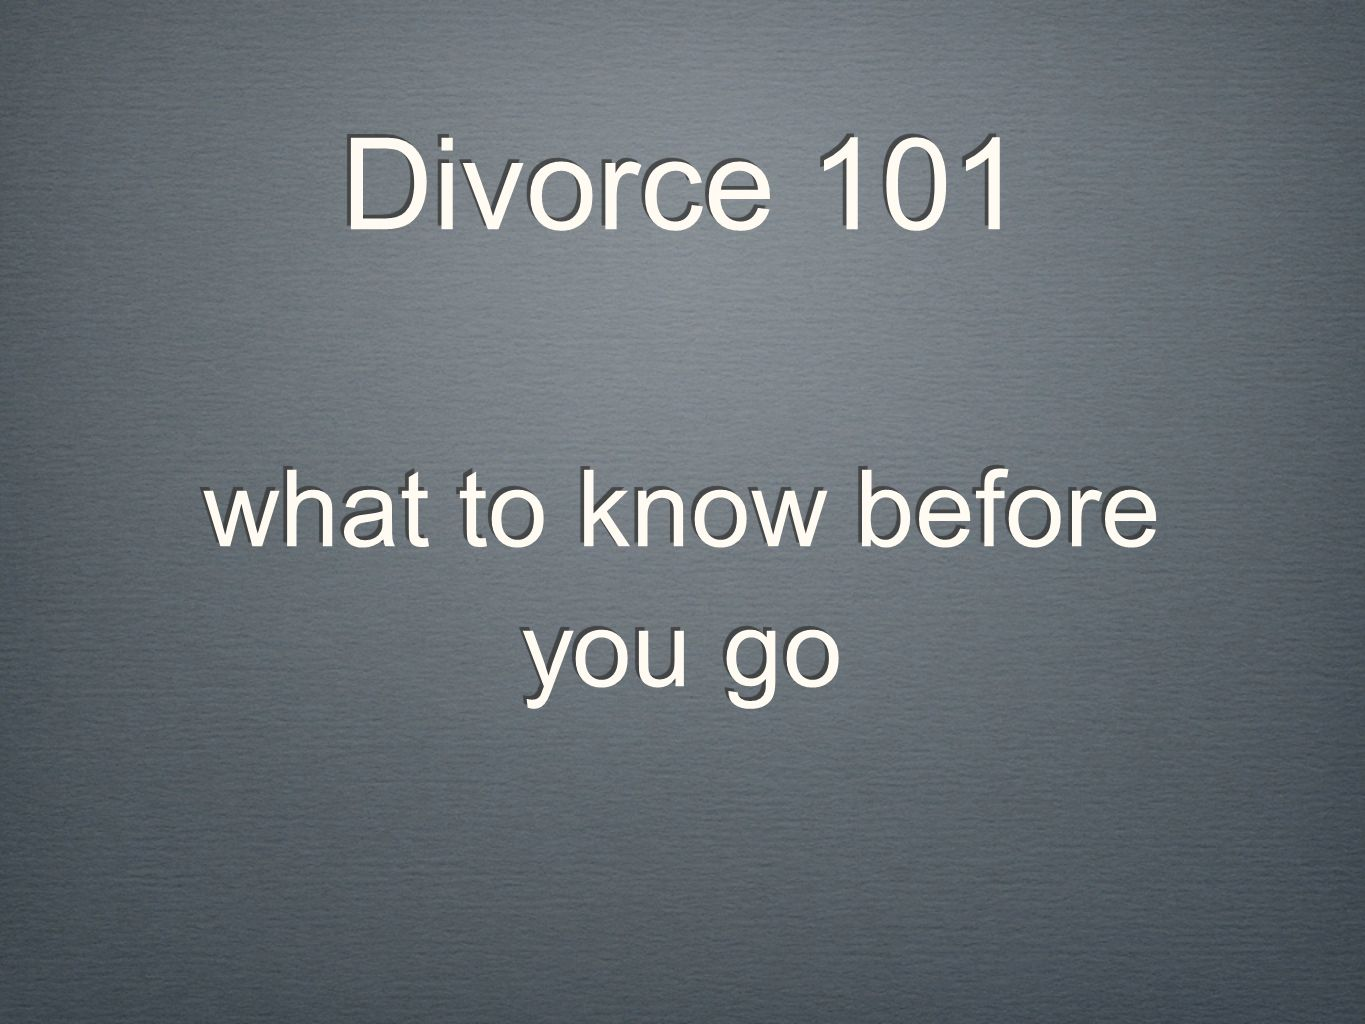 Divorce 101 what to know before you go